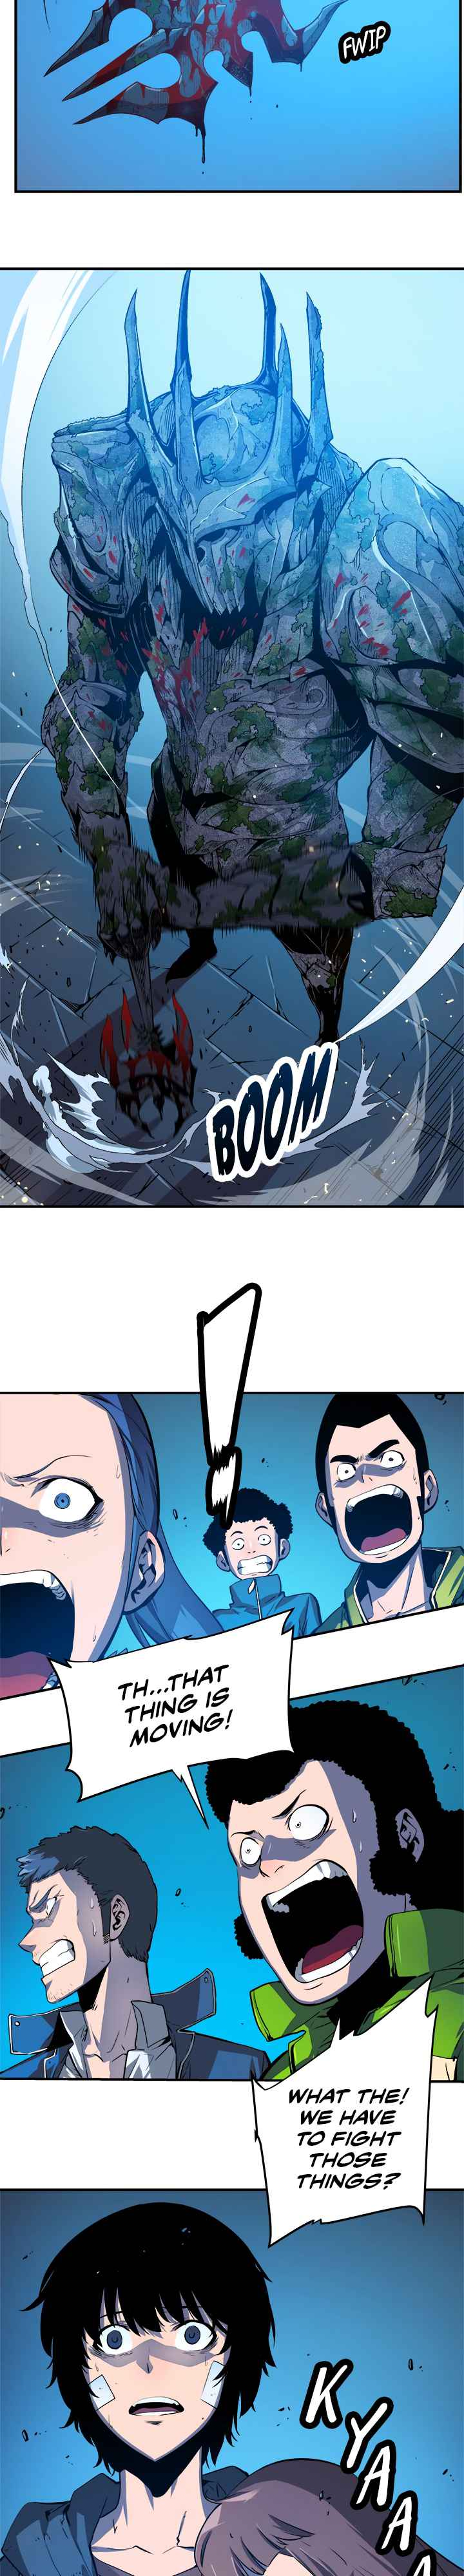 Solo Leveling Chapter 3 Page 23